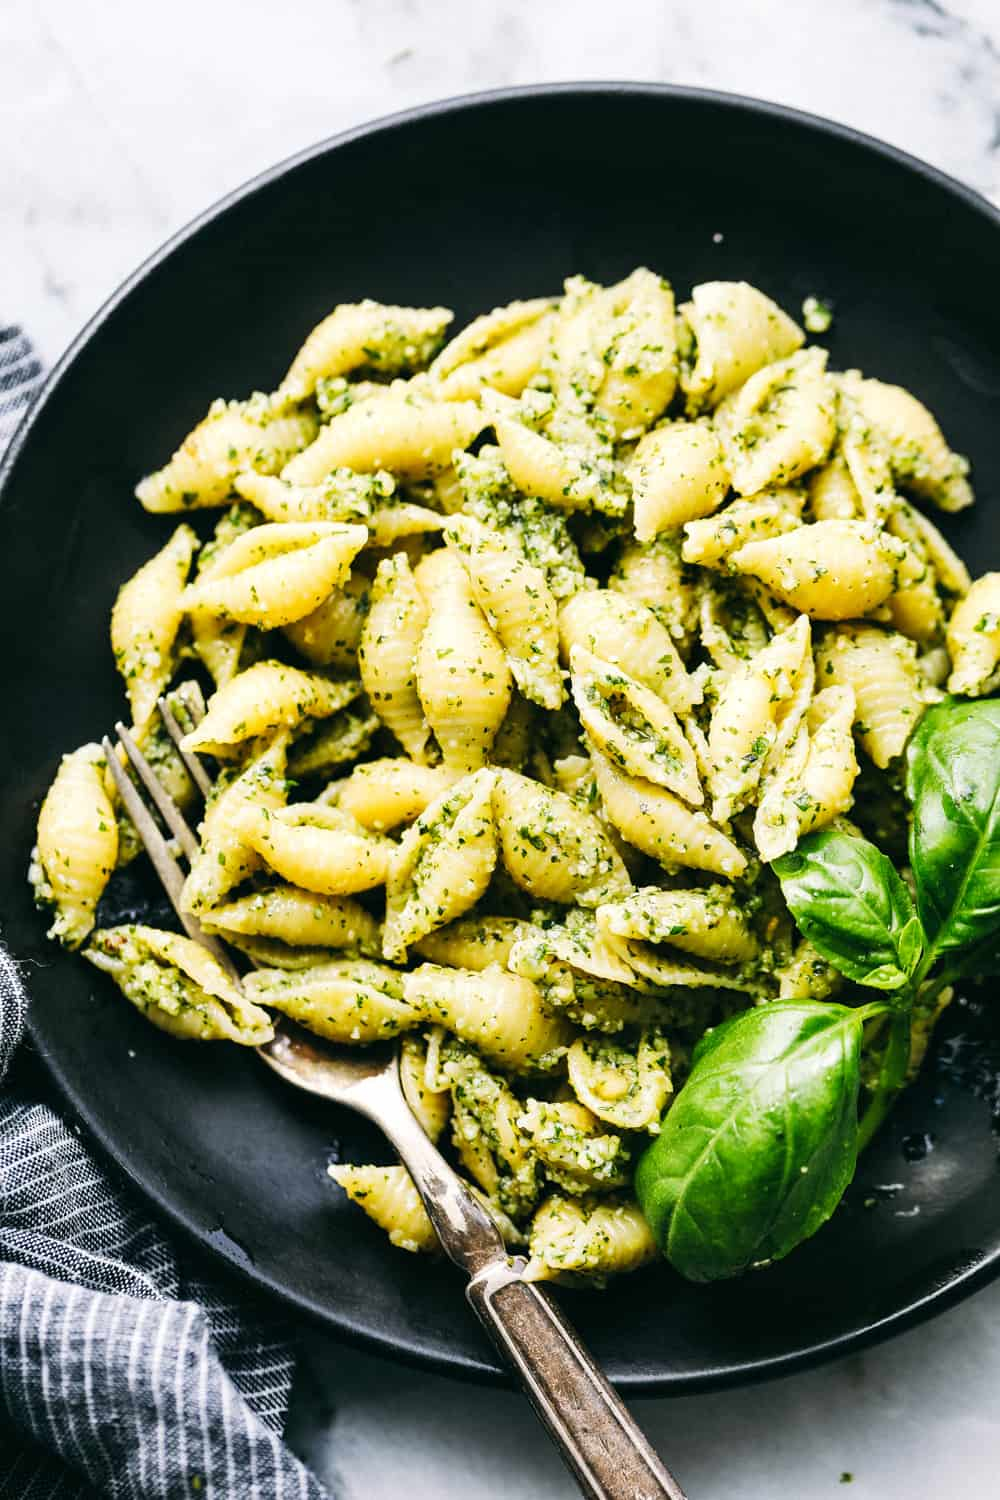 Pesto pasta on a black plate.